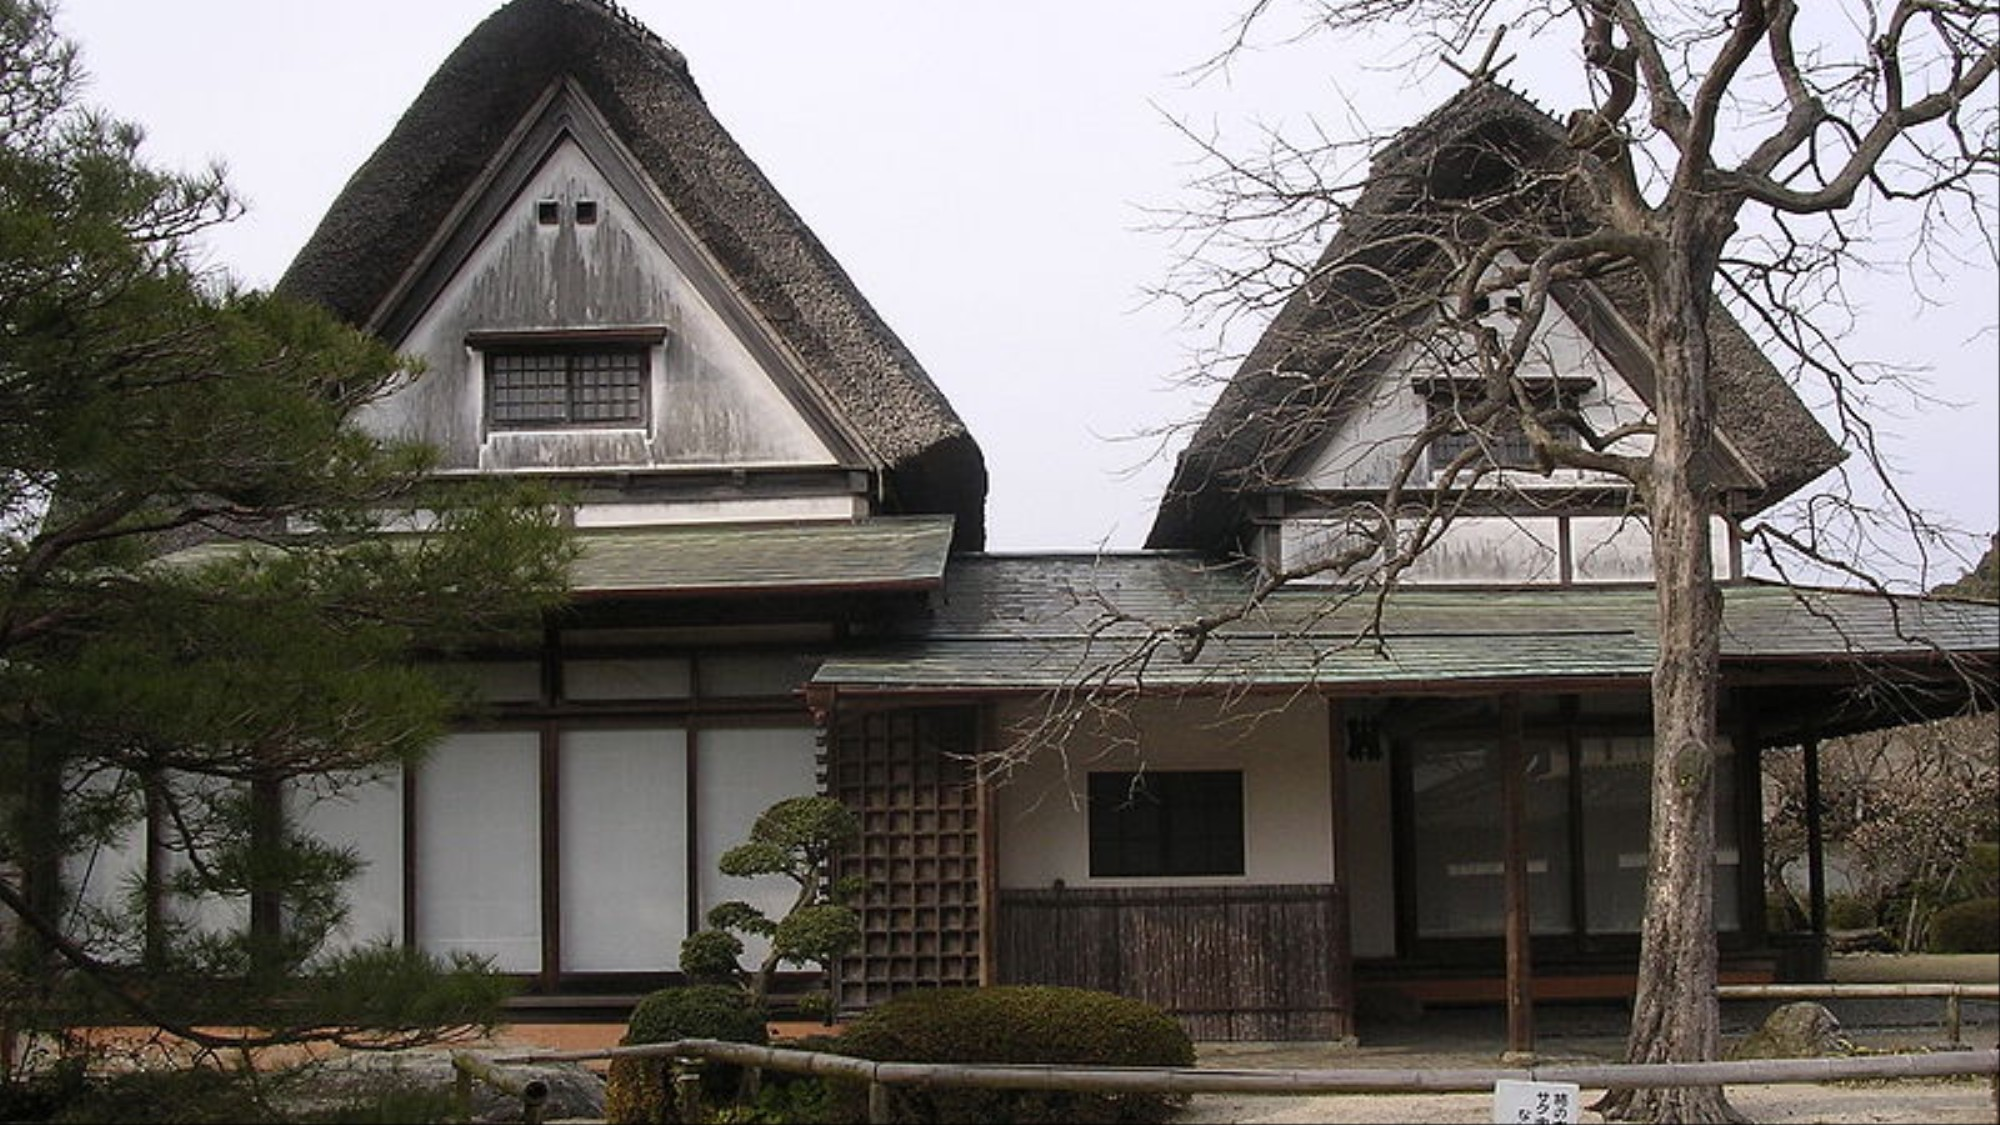 Japan Is Giving Away Abandoned Houses for Free - VICE